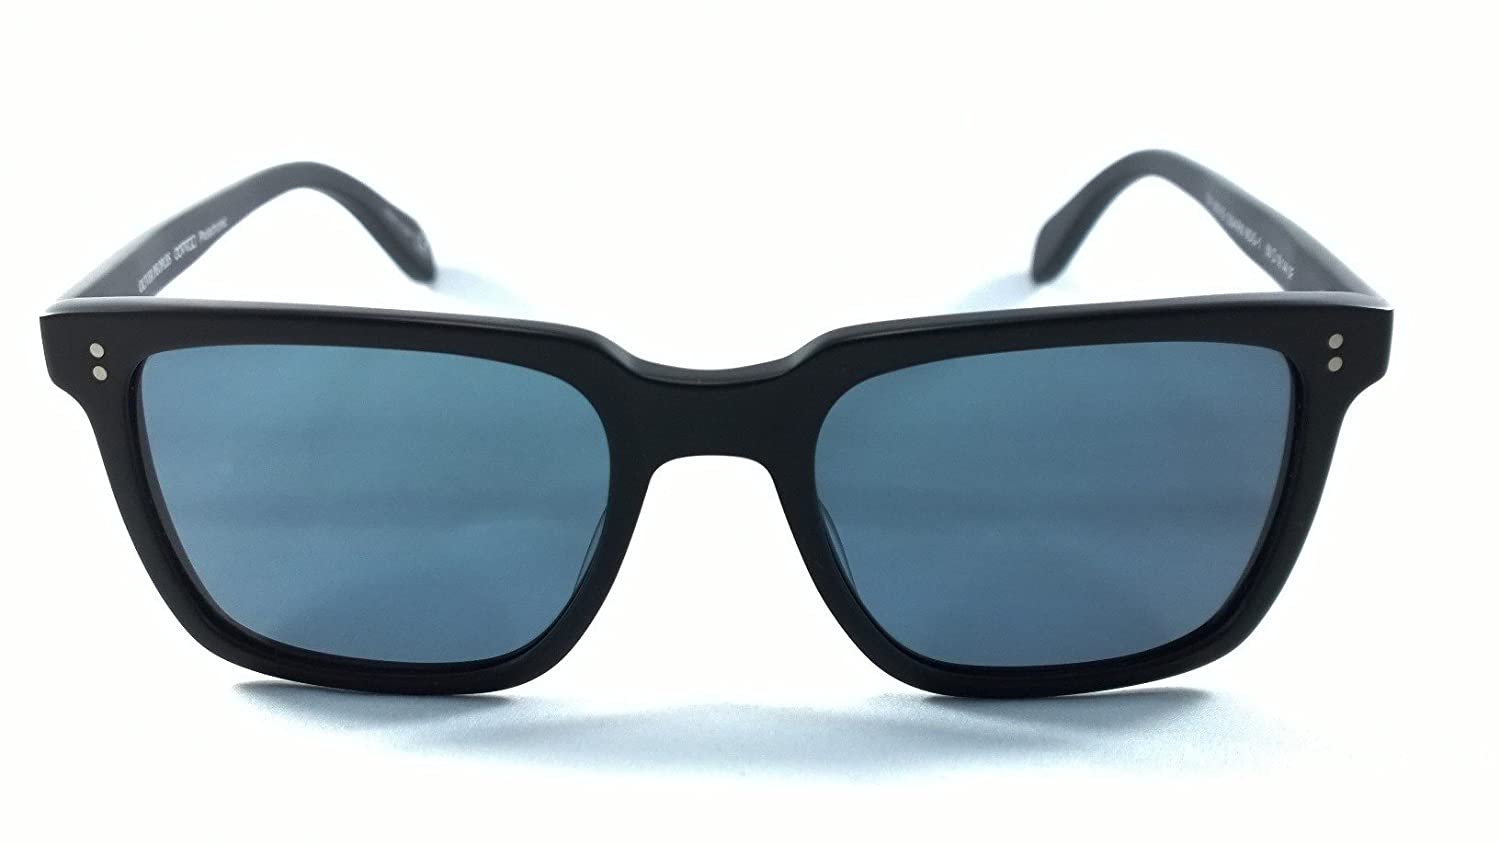 1105ef4d7da Oliver Peoples Ov5031s Ndg-1 100% Authentic Men s Sunglasses Noir 1204 r8   Amazon.ca  Clothing   Accessories